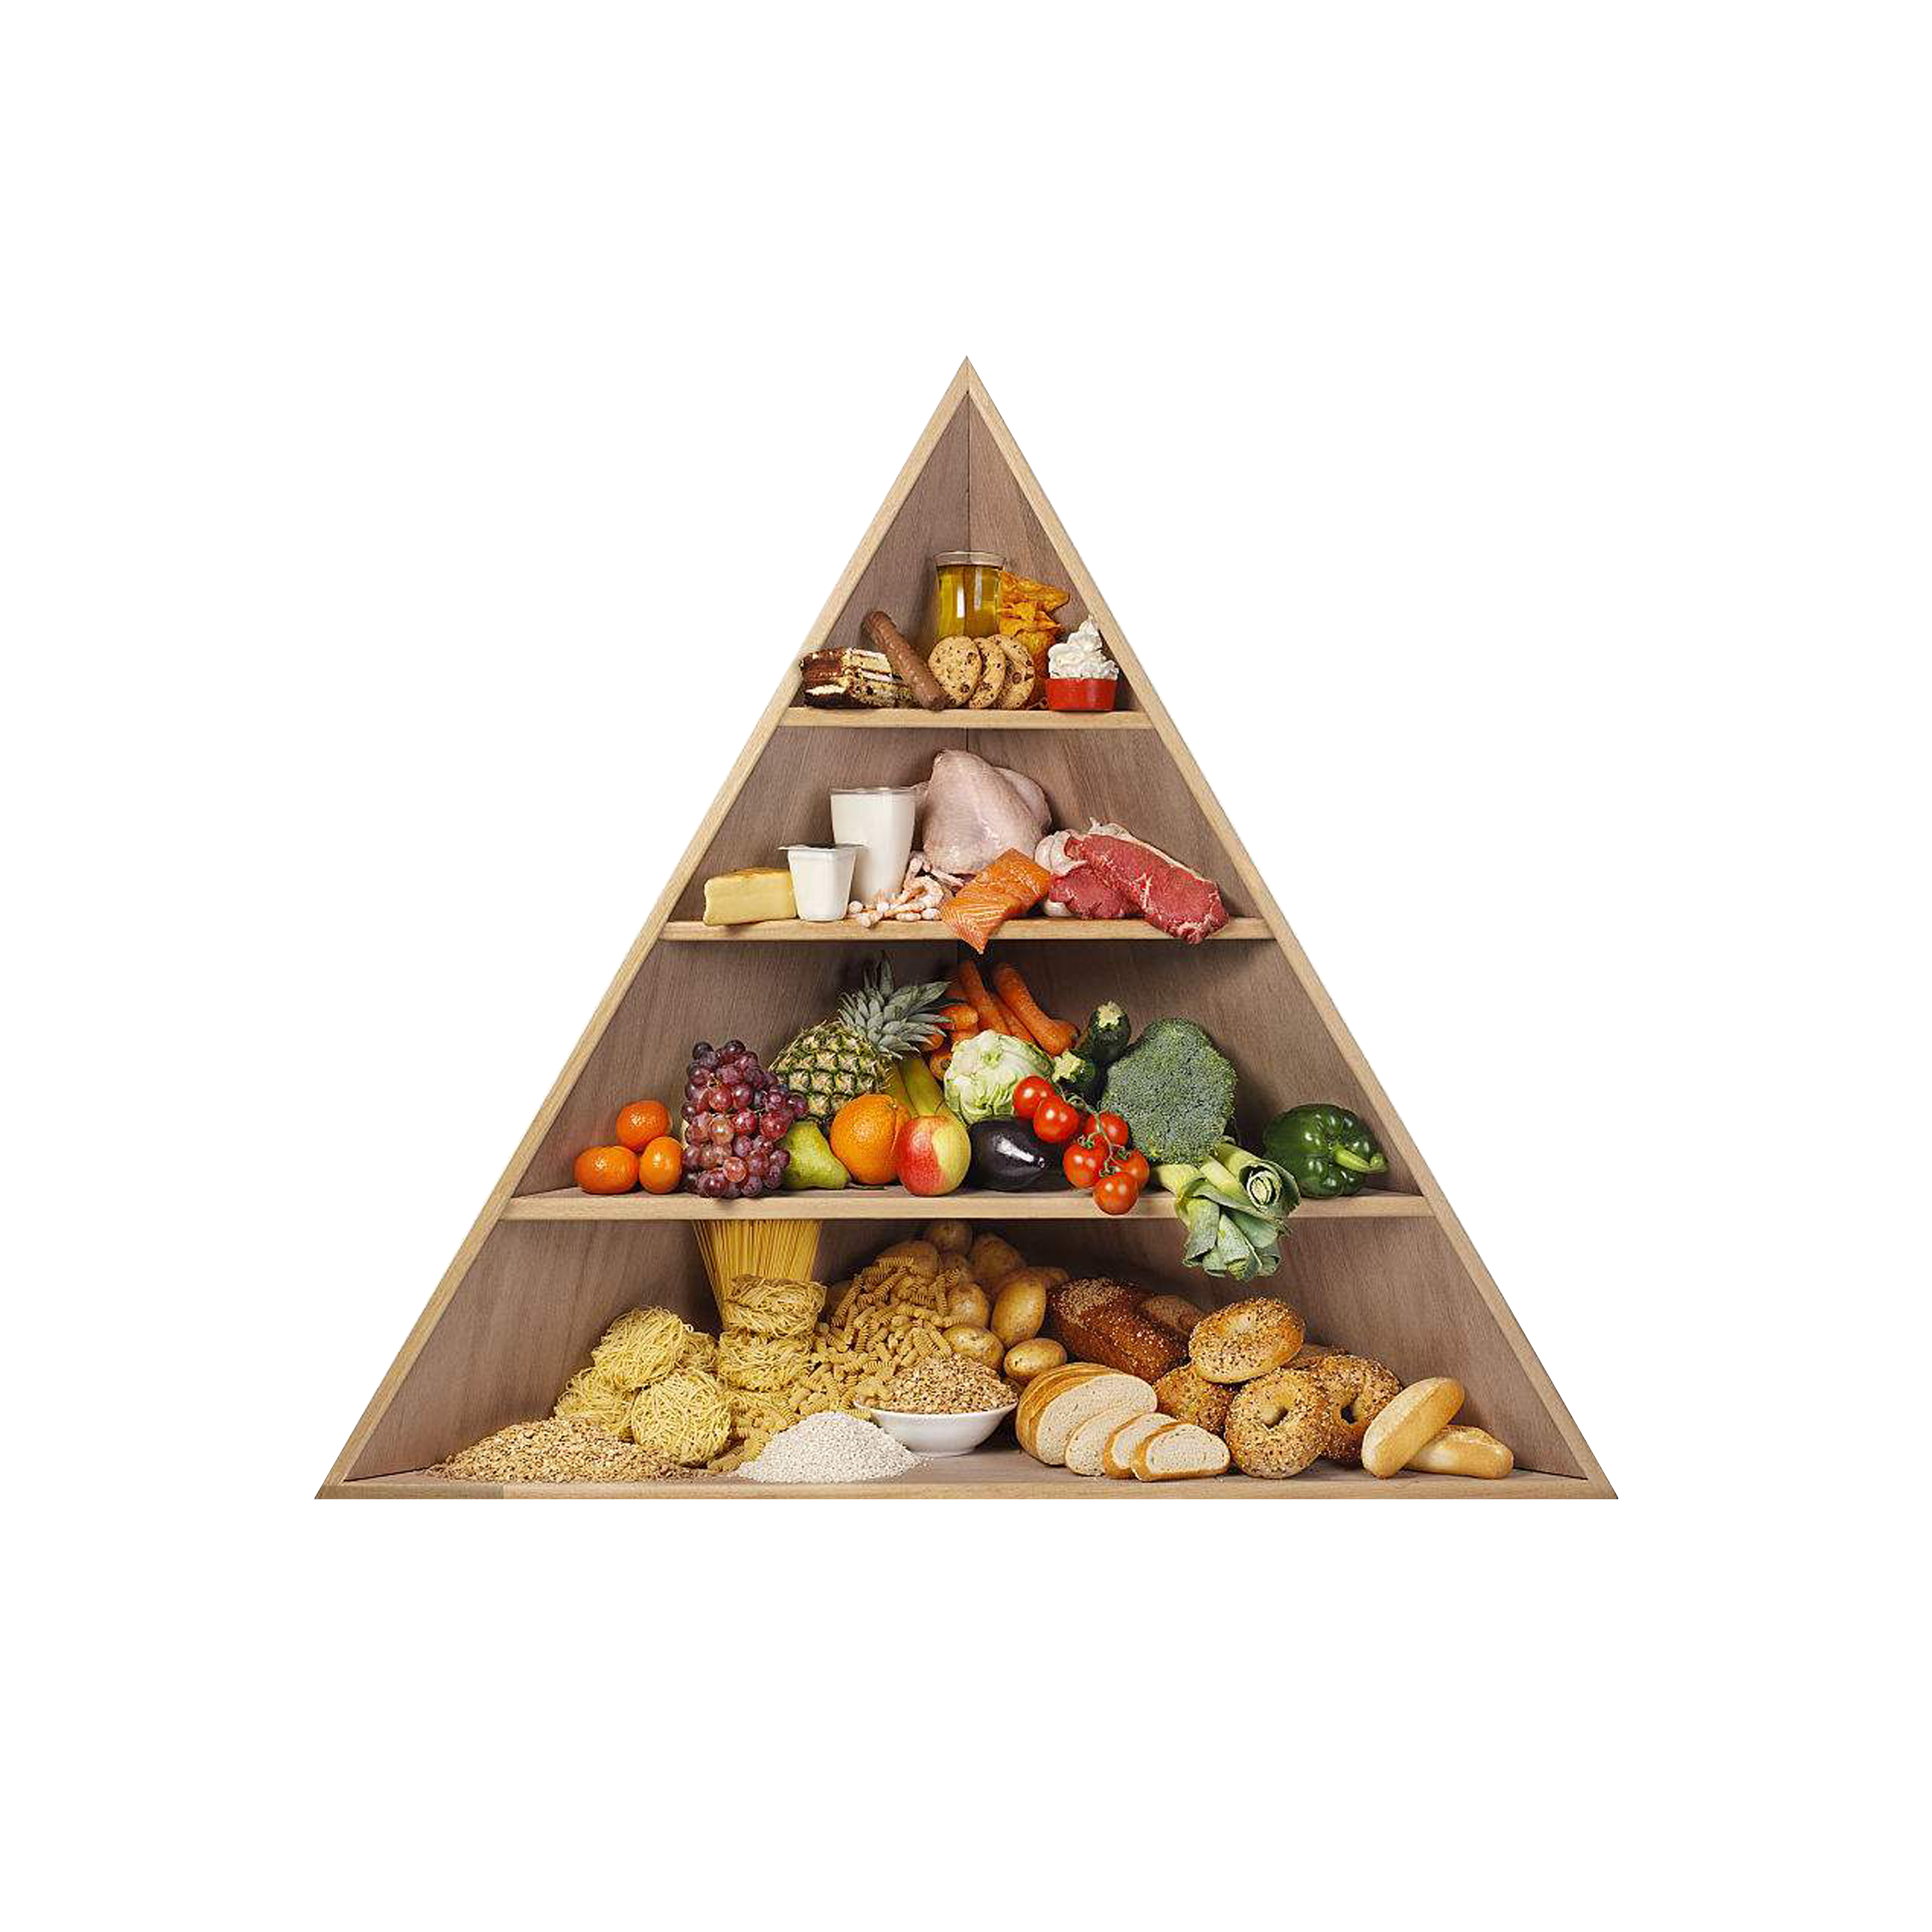 Food pyramid png. Nutrient healthy diet nutrition